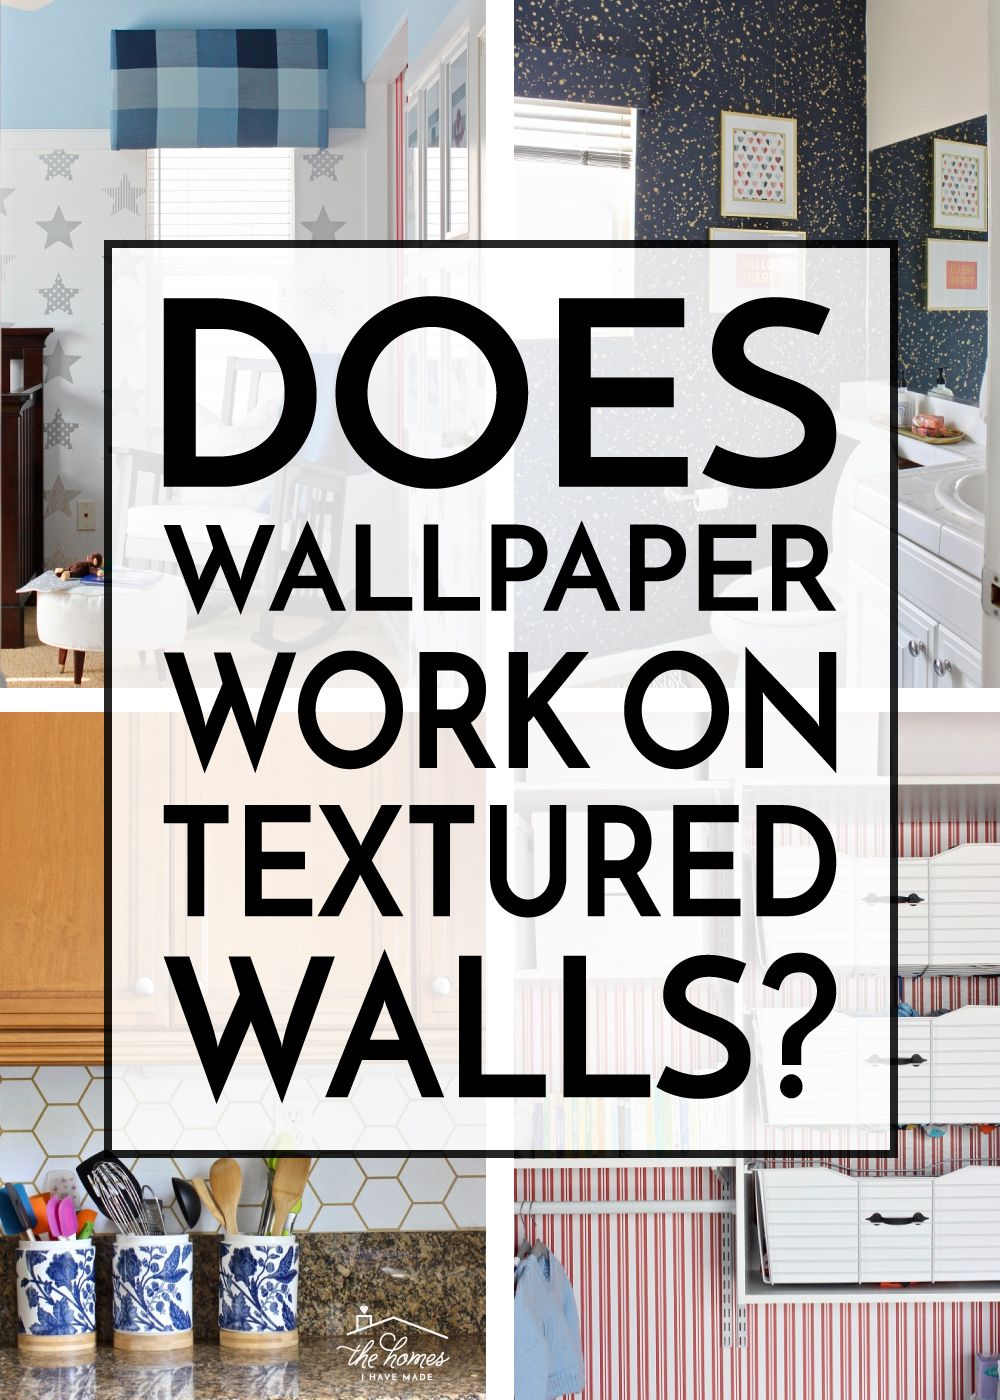 Best Removable Wallpaper For Textured Walls